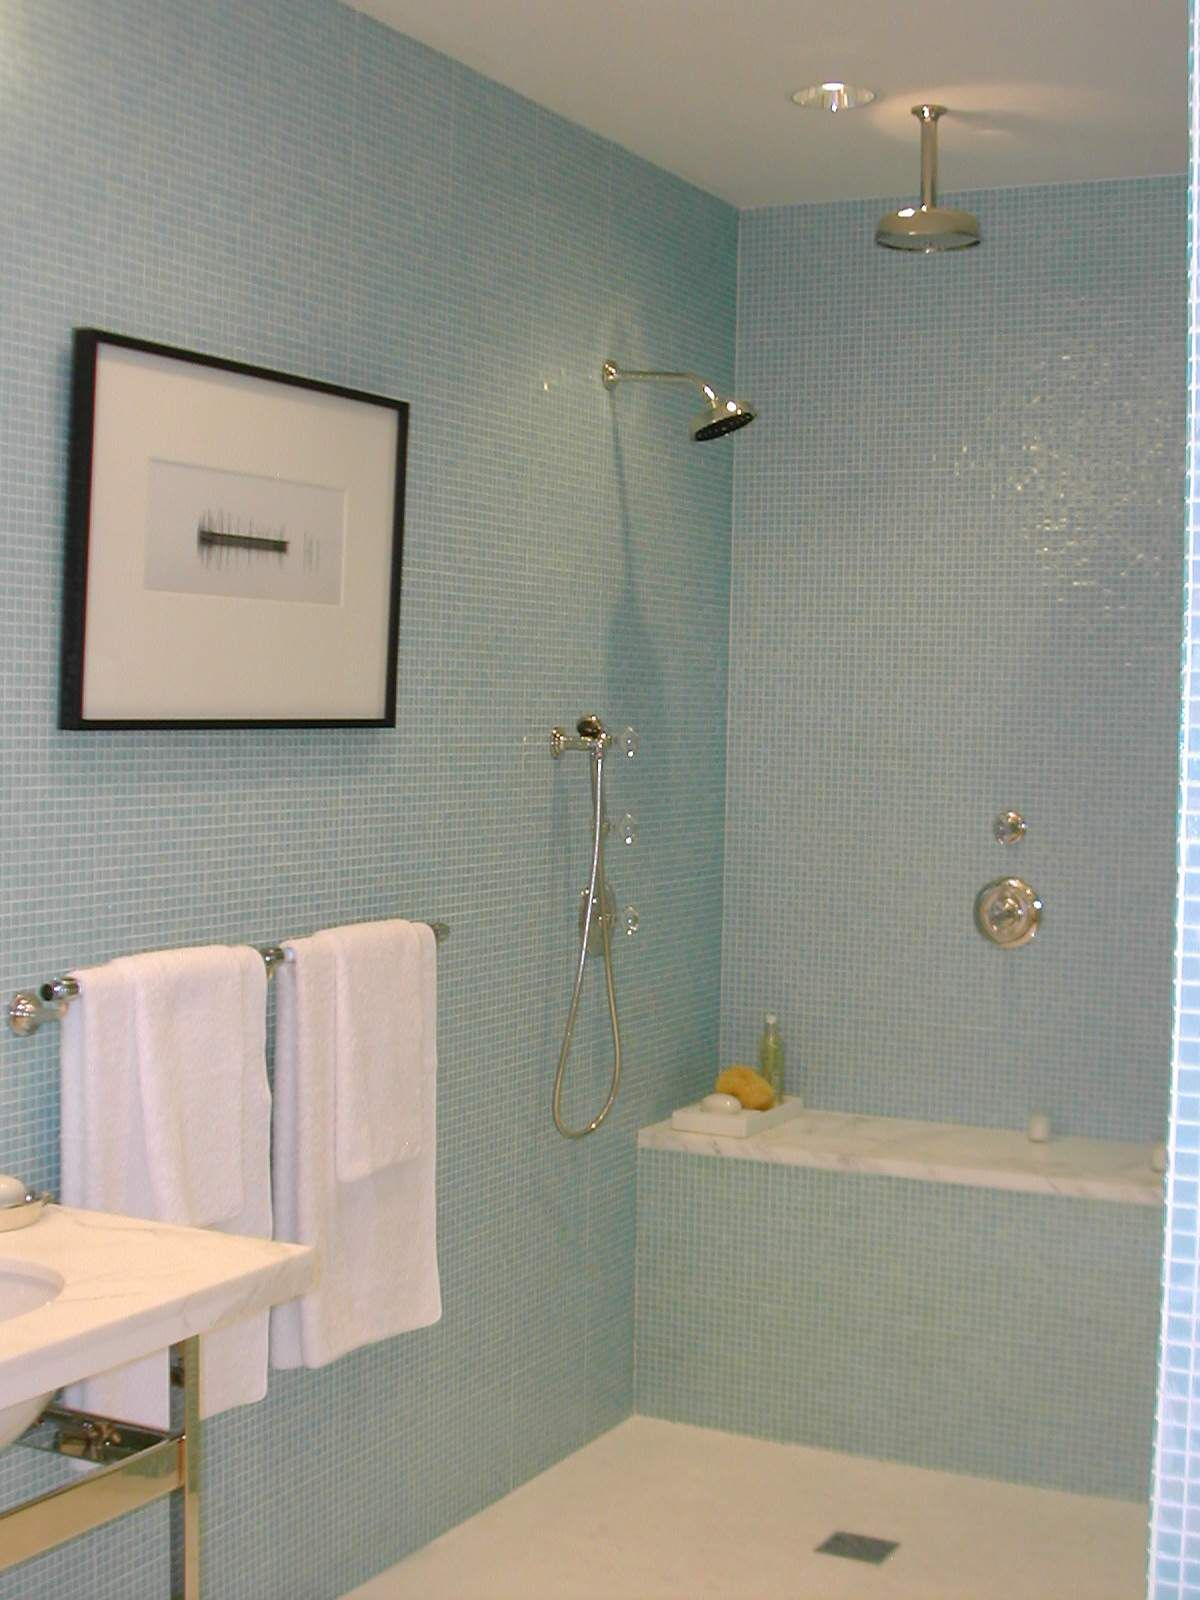 Master Bathroom Knee Wall 3 showerheads, too much?? could put the handheld on knee wall